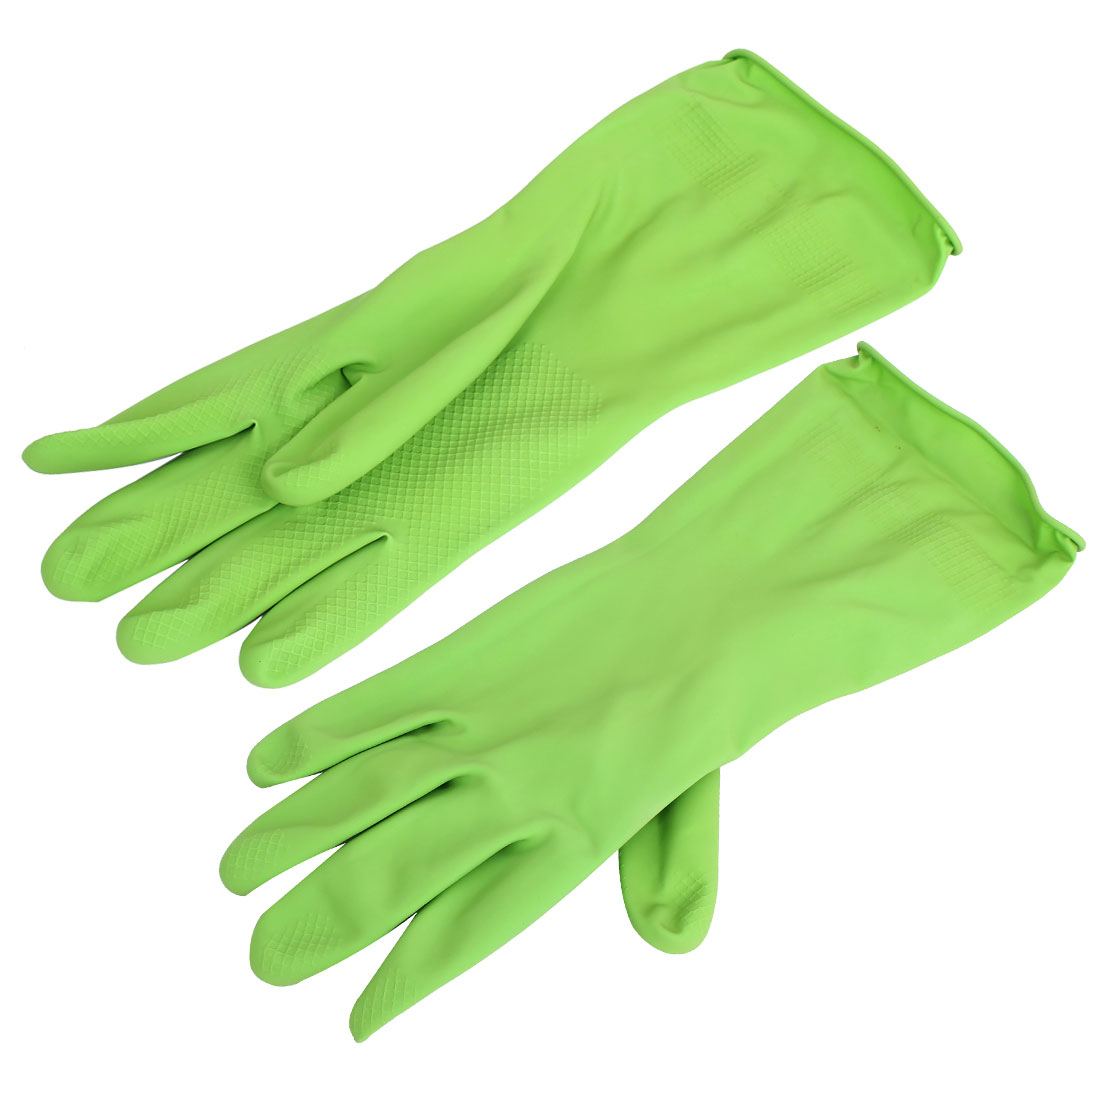 32cm Length Rubber Household Kitchen Cleaning Dish Washing Gloves Green Pair